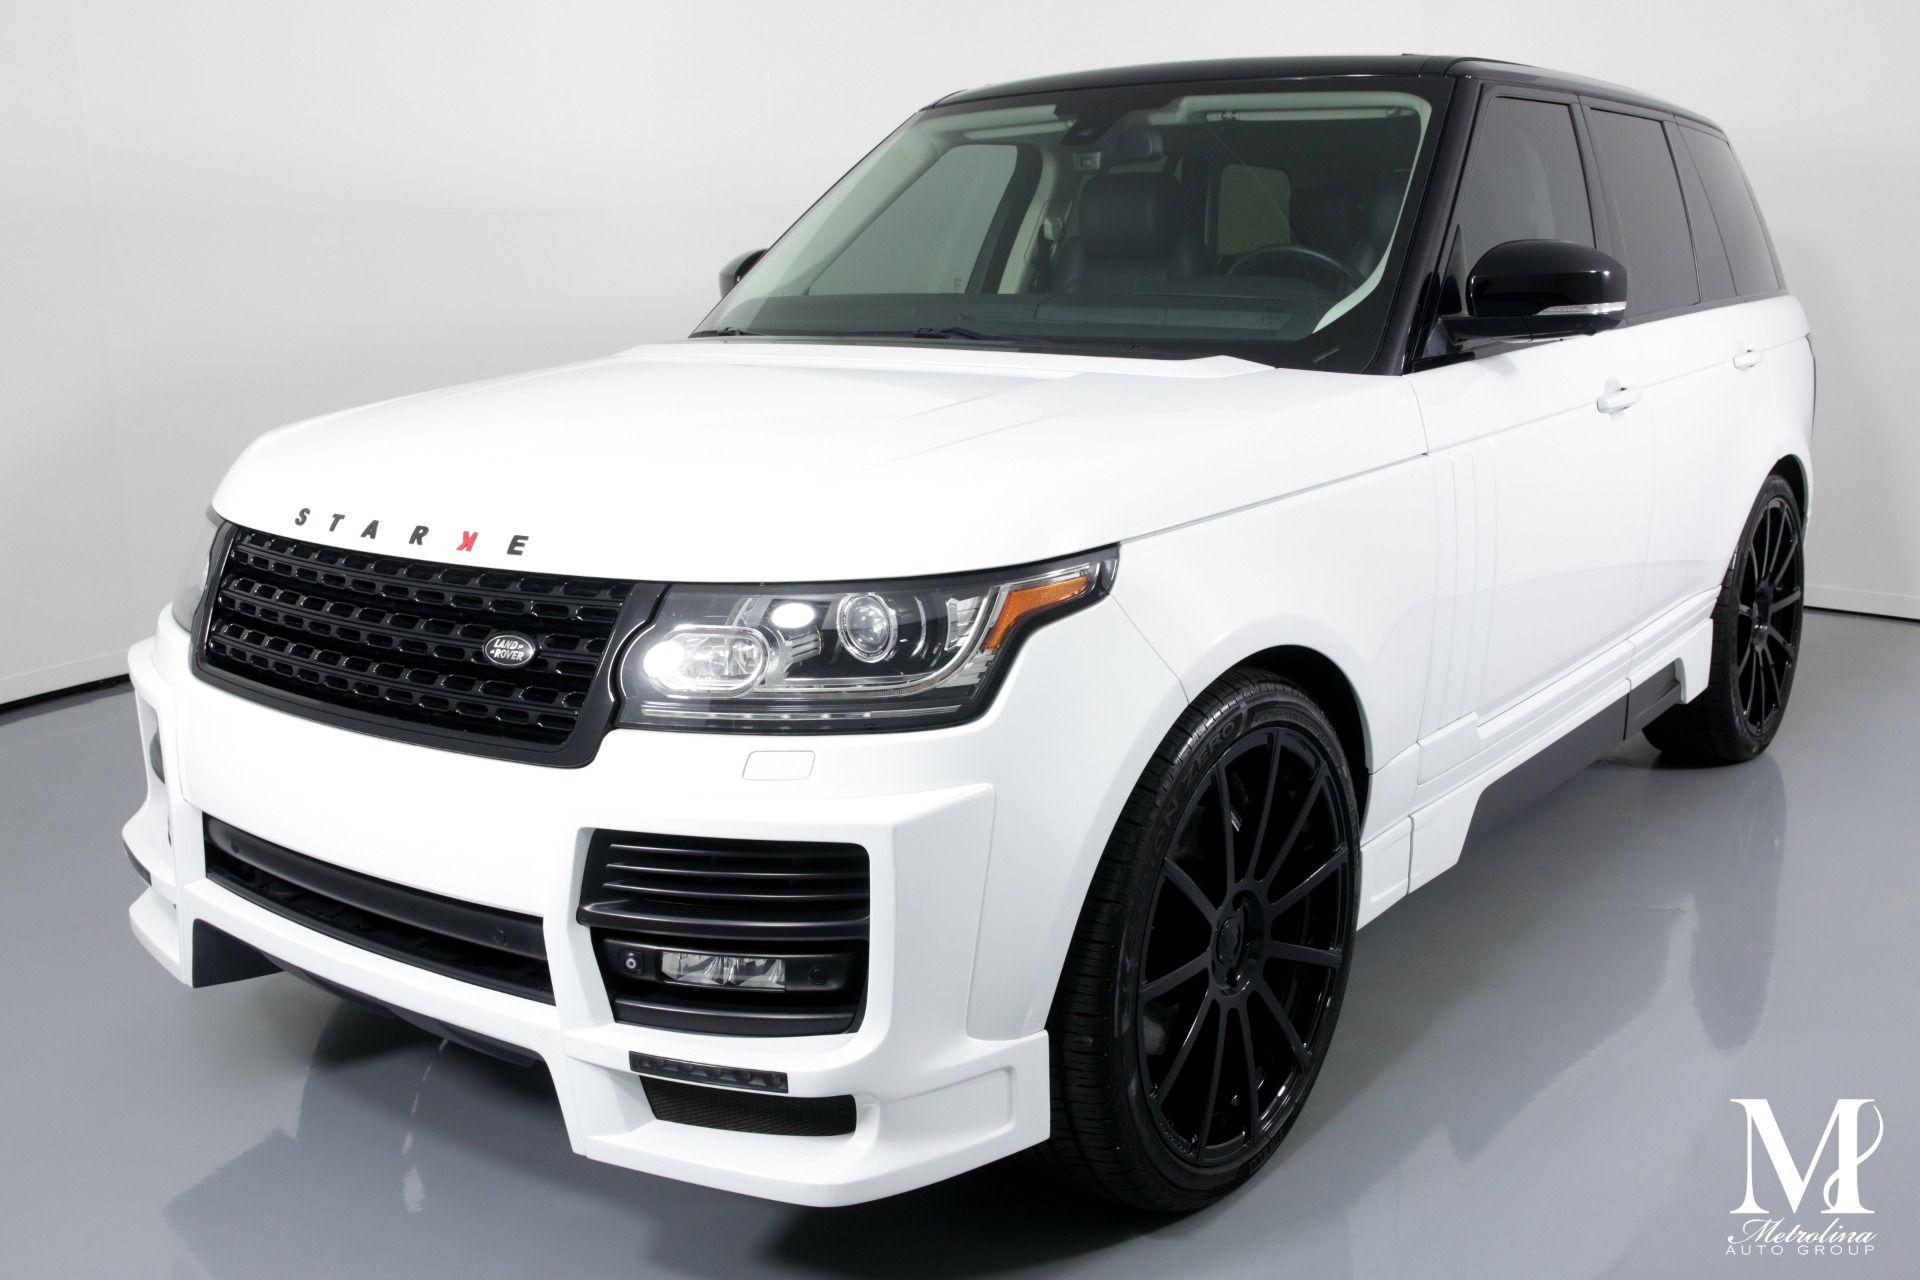 Used 2013 Land Rover Range Rover HSE for sale $69,996 at Metrolina Auto Group in Charlotte NC 28217 - 4